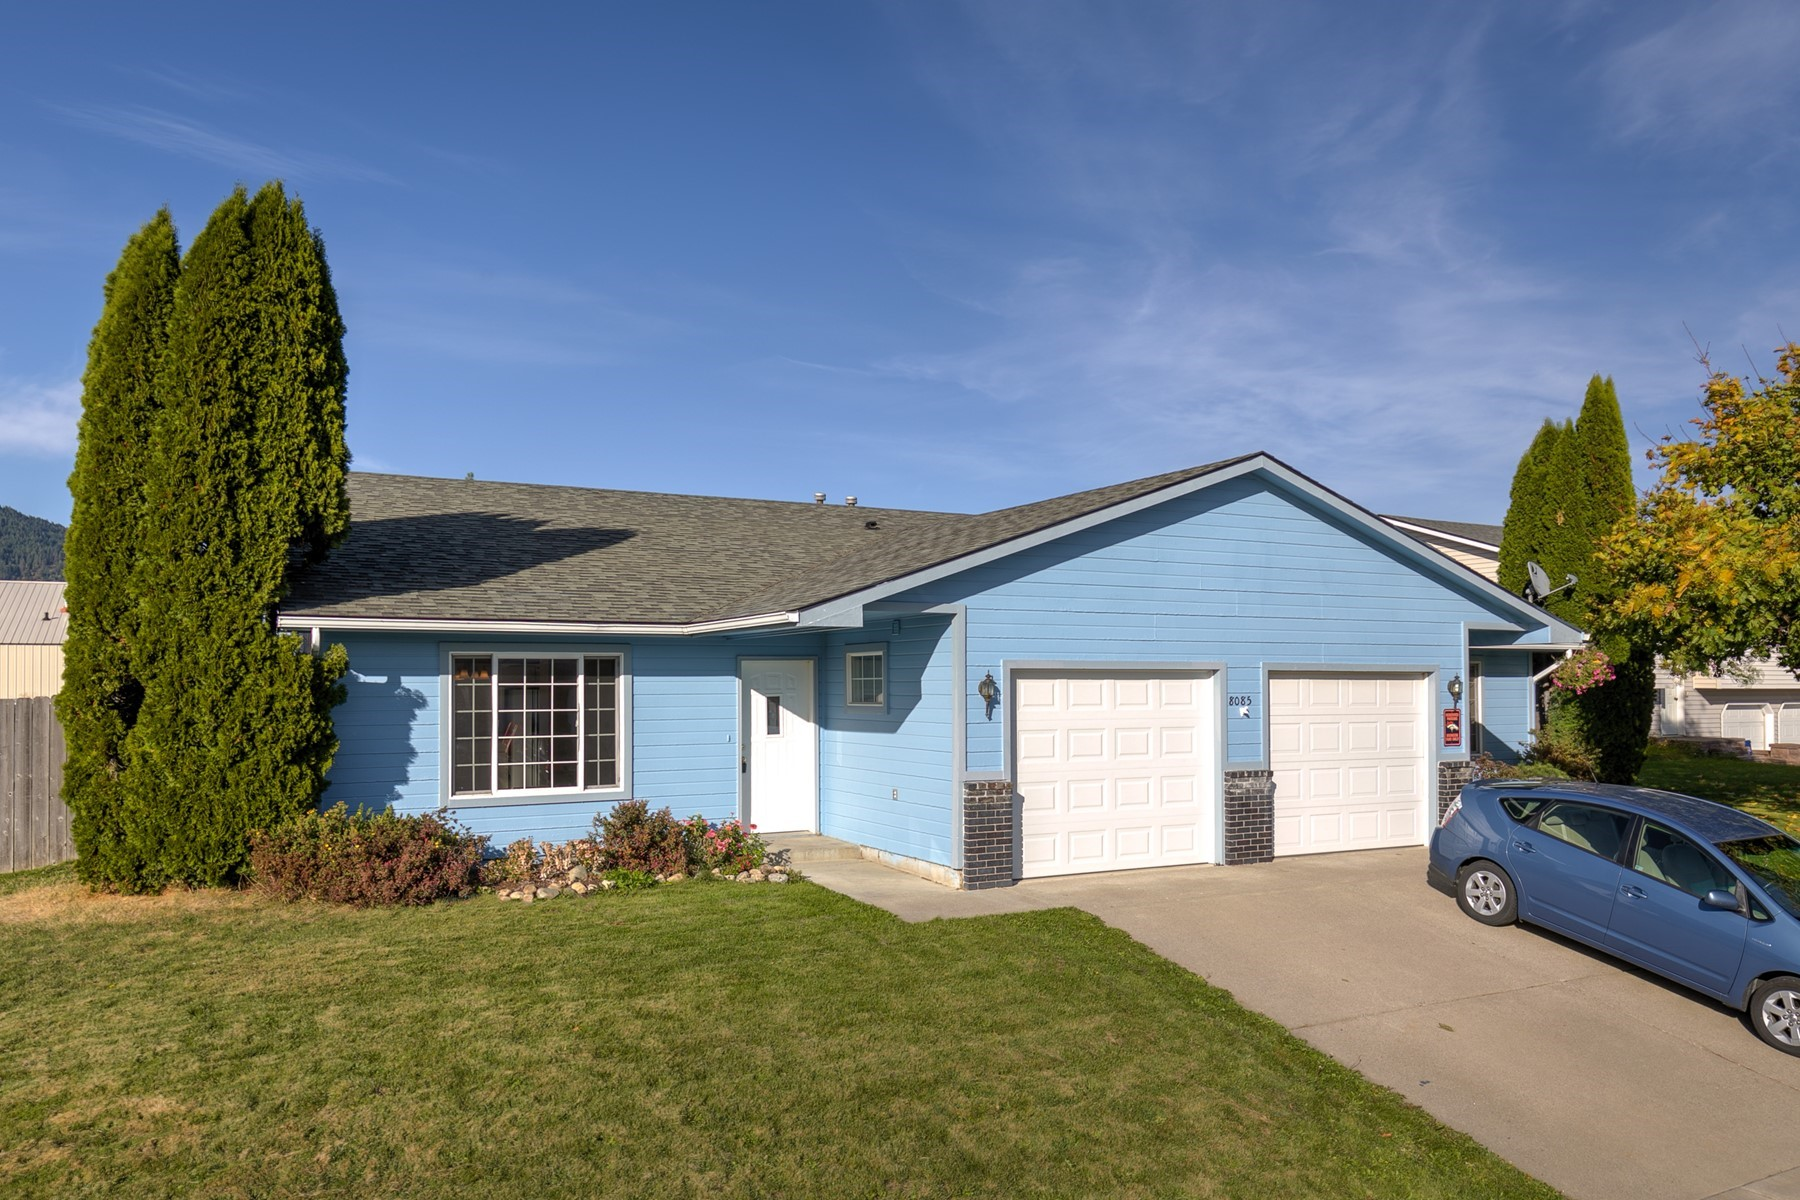 Single Family Homes for Active at Duplex in Rathdrum 8085 W Colorado St Rathdrum, Idaho 83858 United States